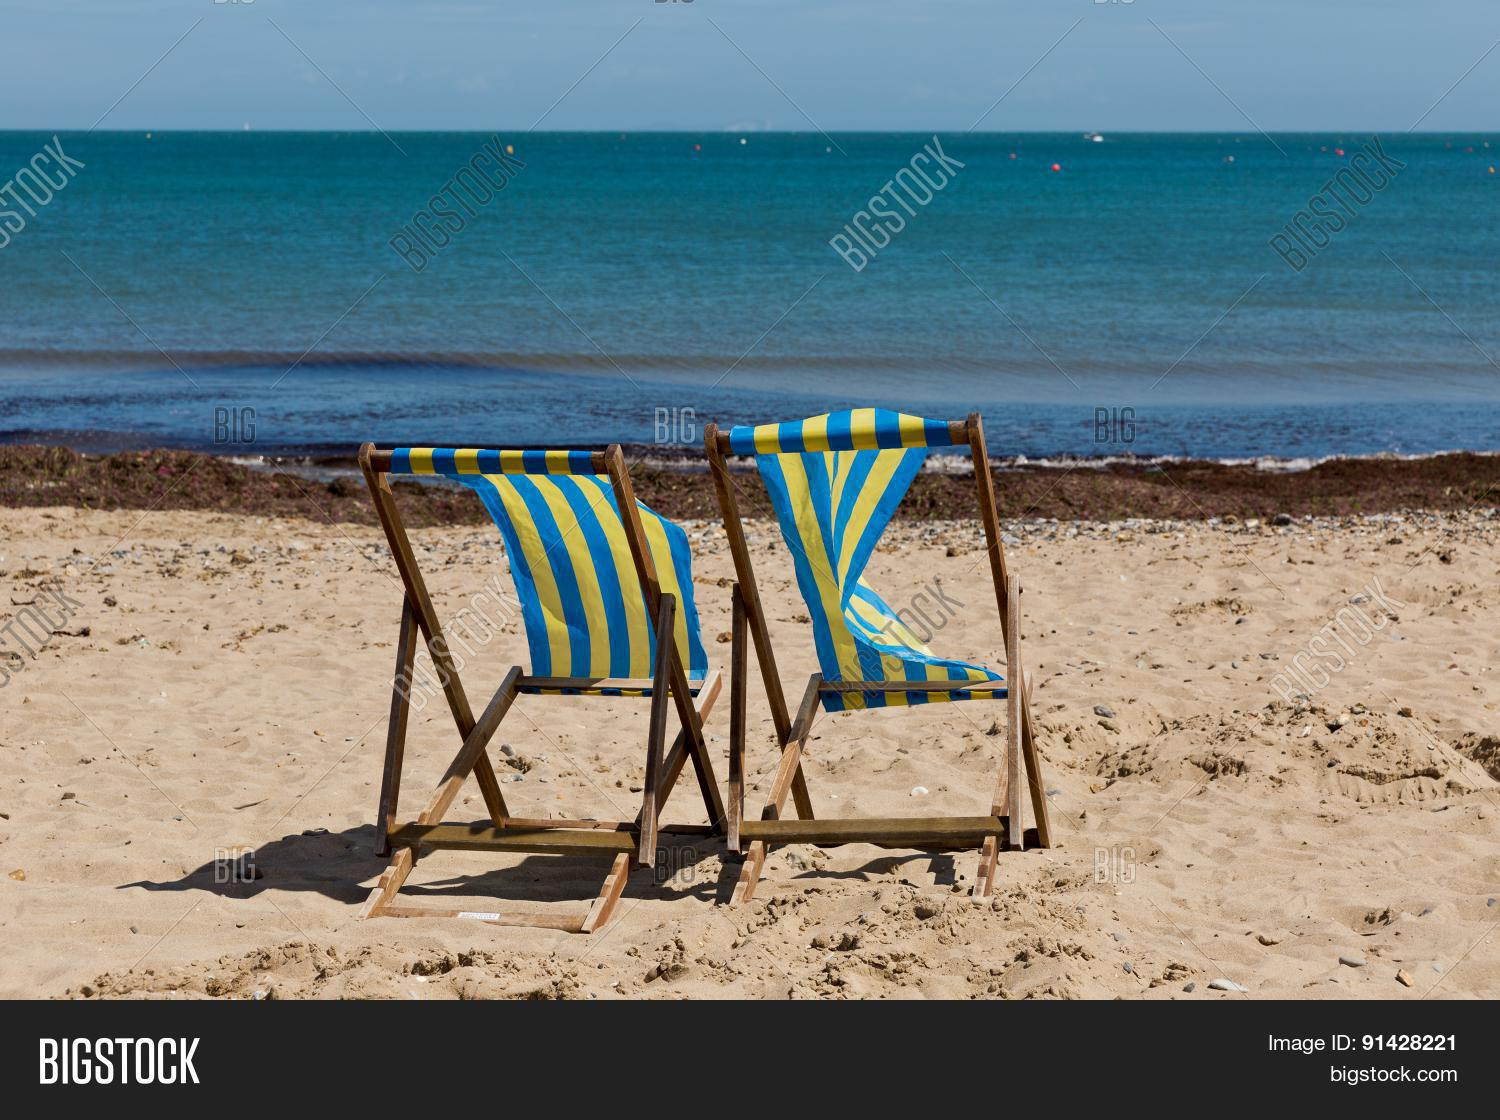 Remarkable Two Blue White Striped Image Photo Free Trial Bigstock Caraccident5 Cool Chair Designs And Ideas Caraccident5Info